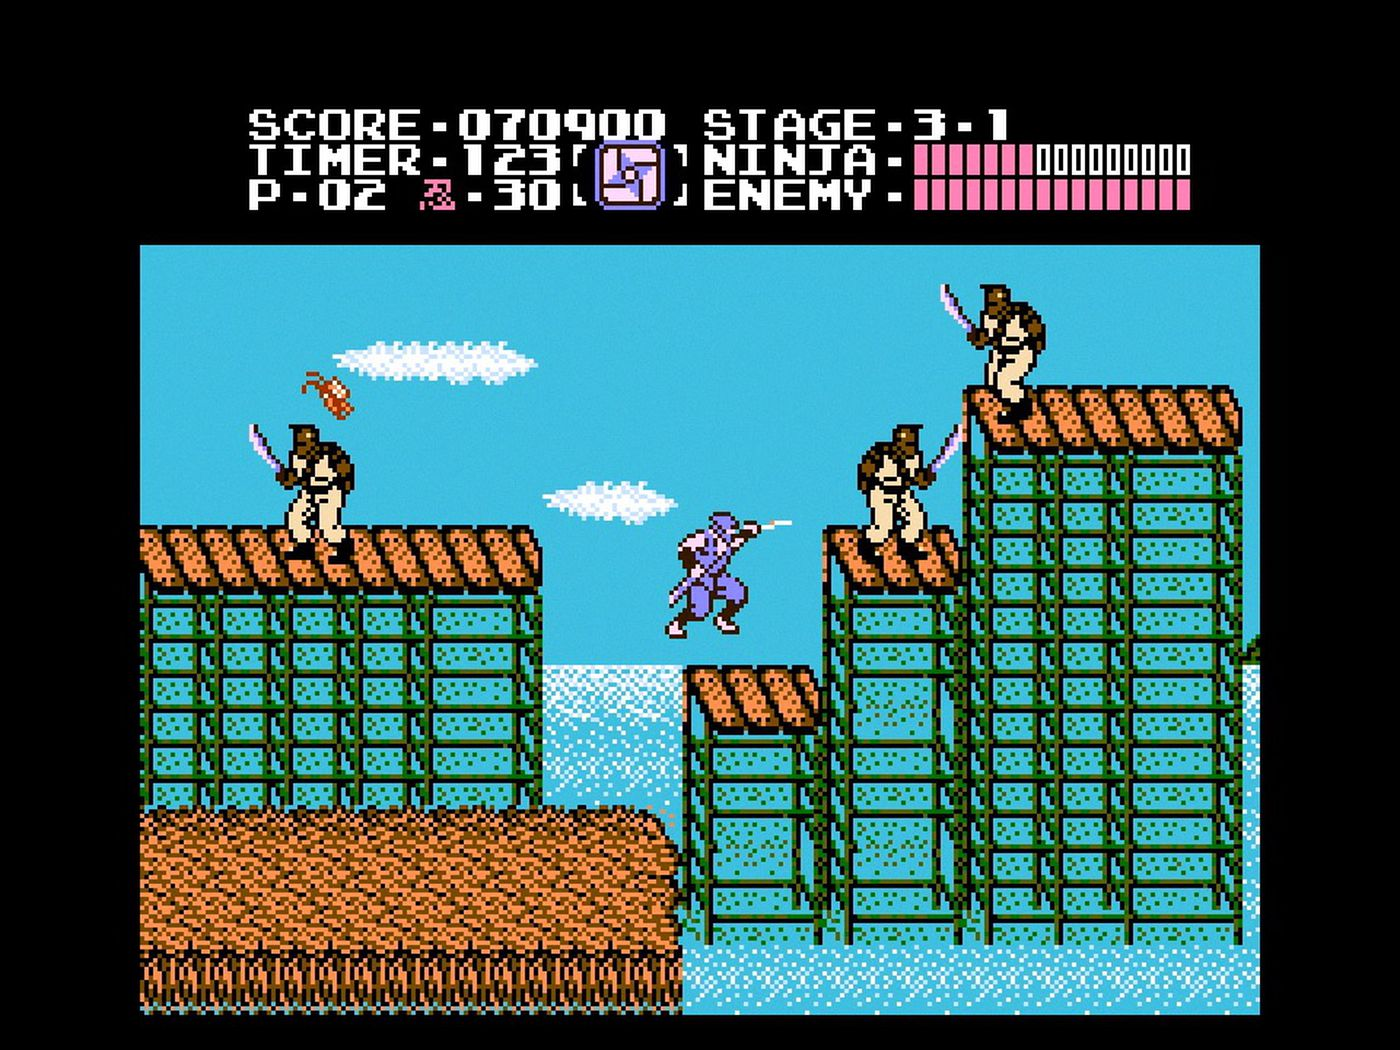 Ninja Gaiden S Soundtrack Is Getting An Elaborate Remaster 30 Years Later The Verge